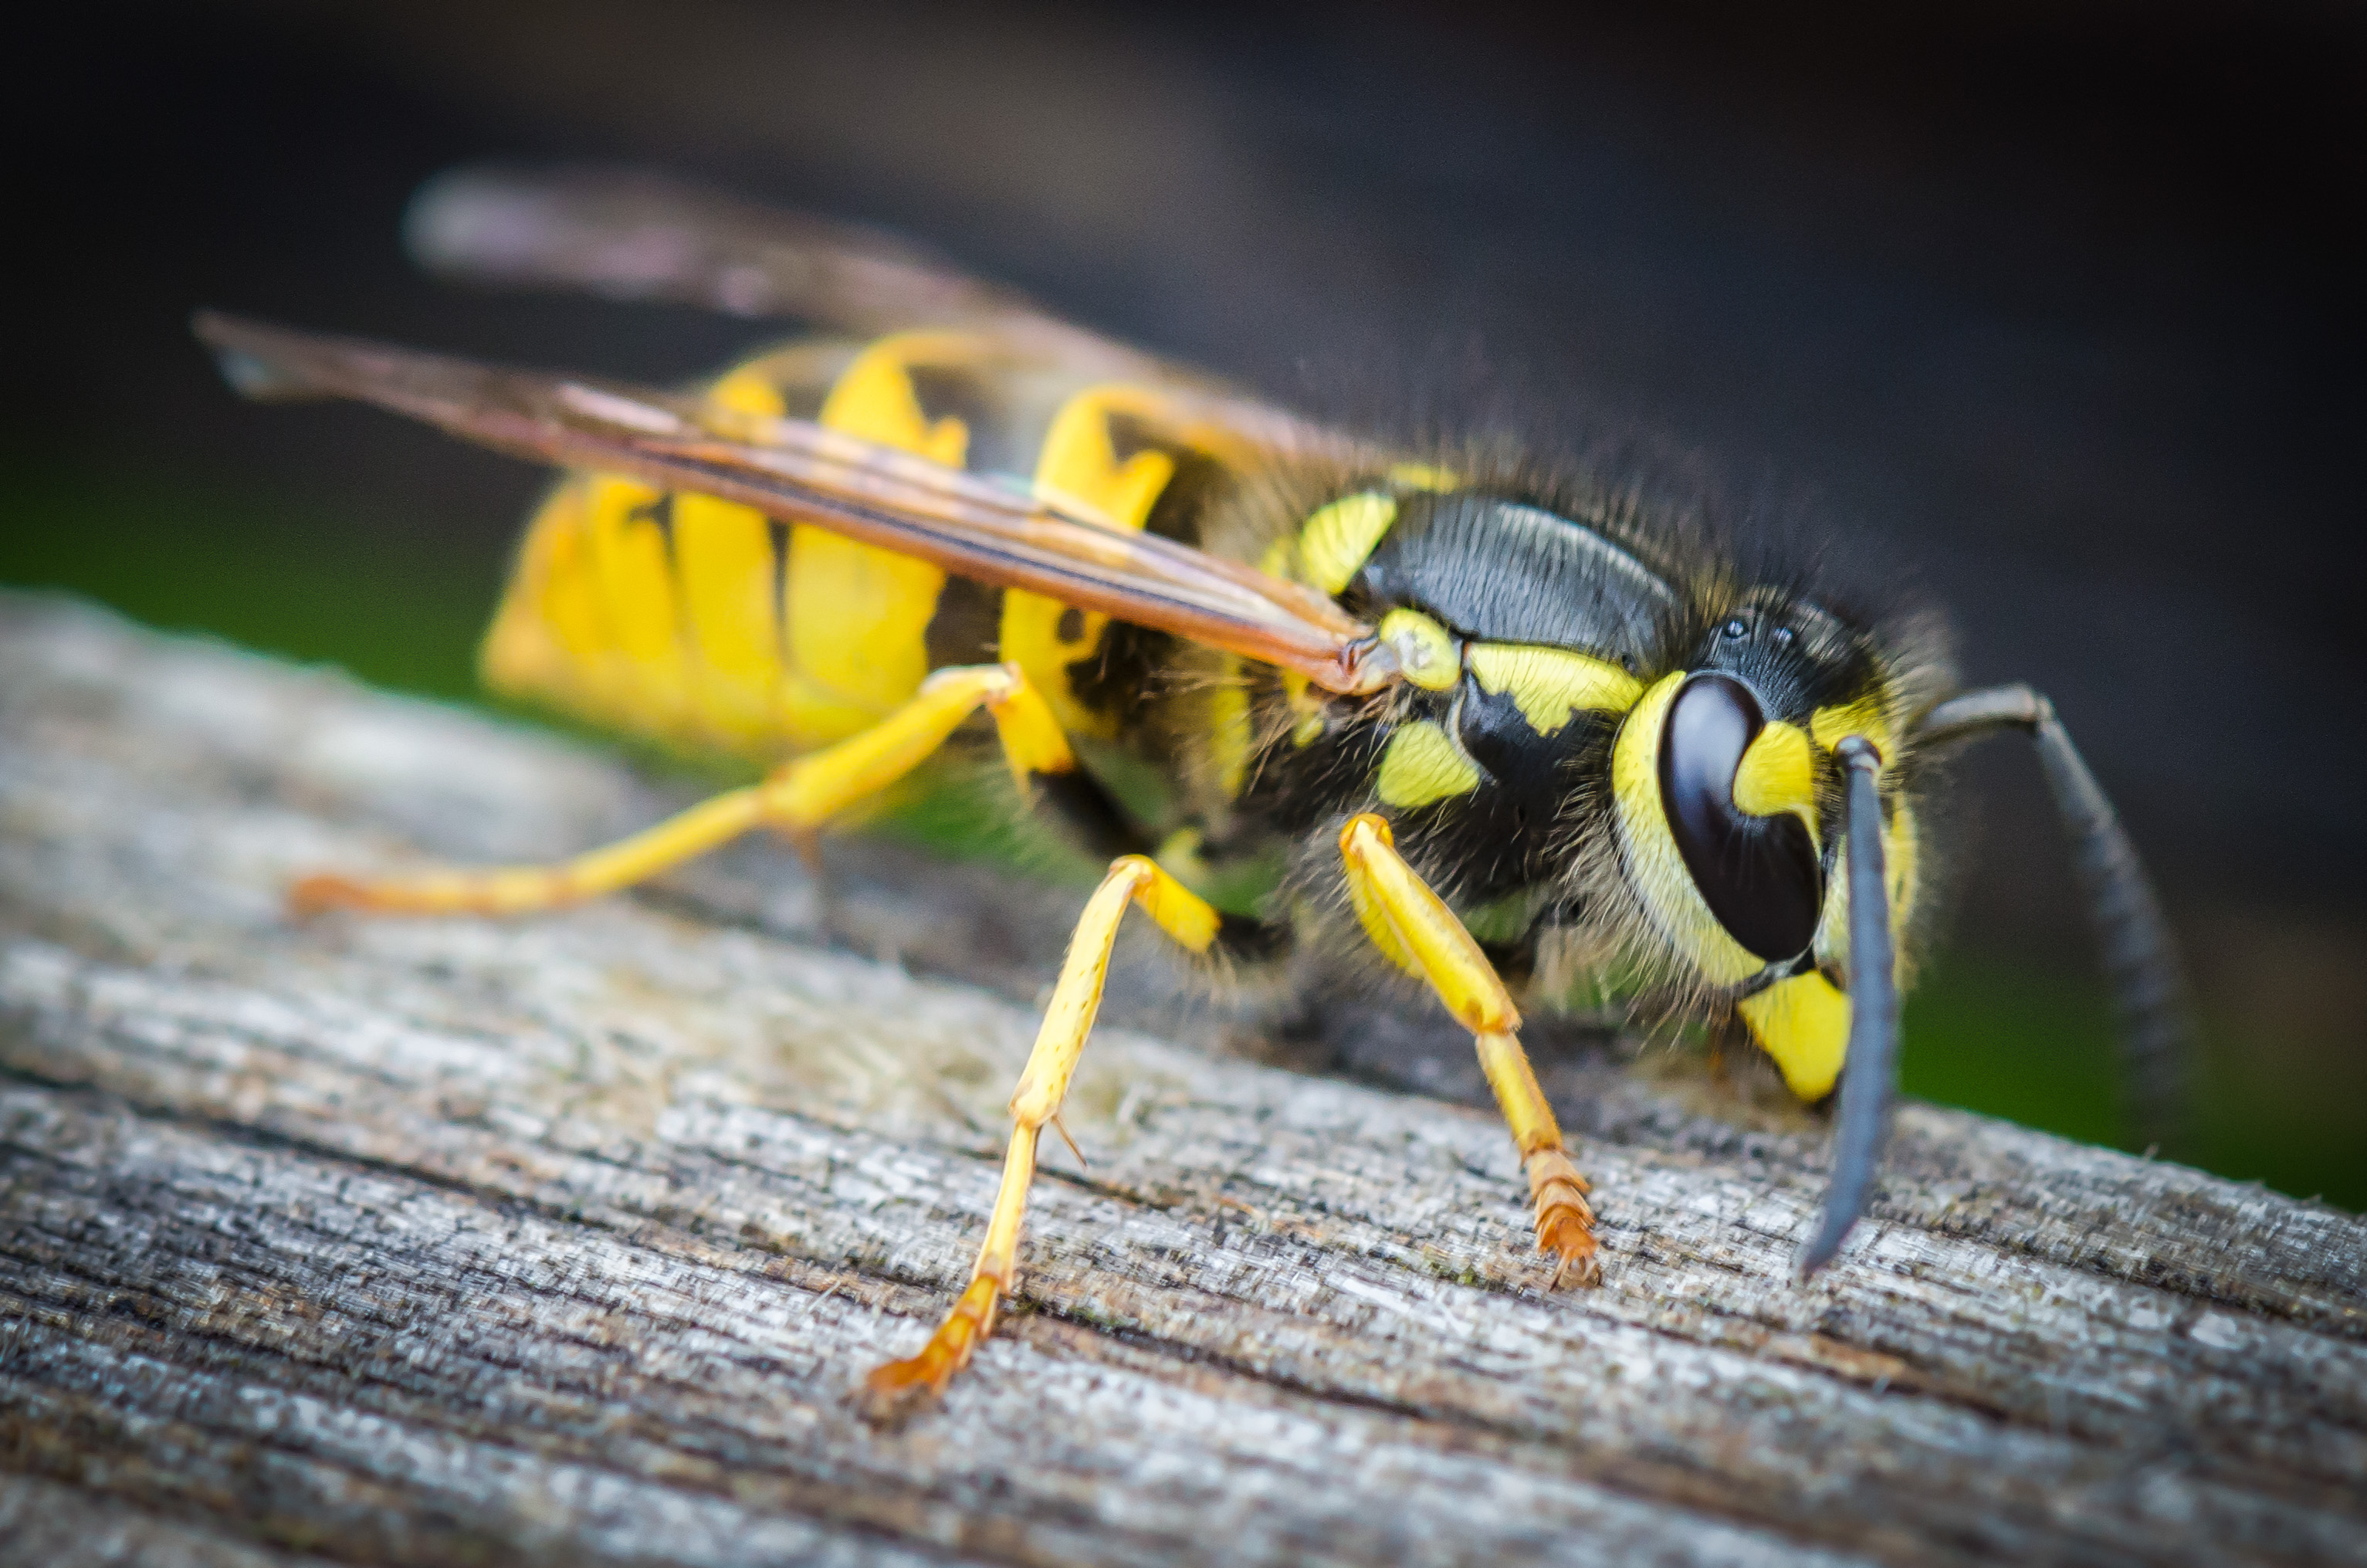 Cheap Way to Kill Wasps | Home Guides | SF Gate